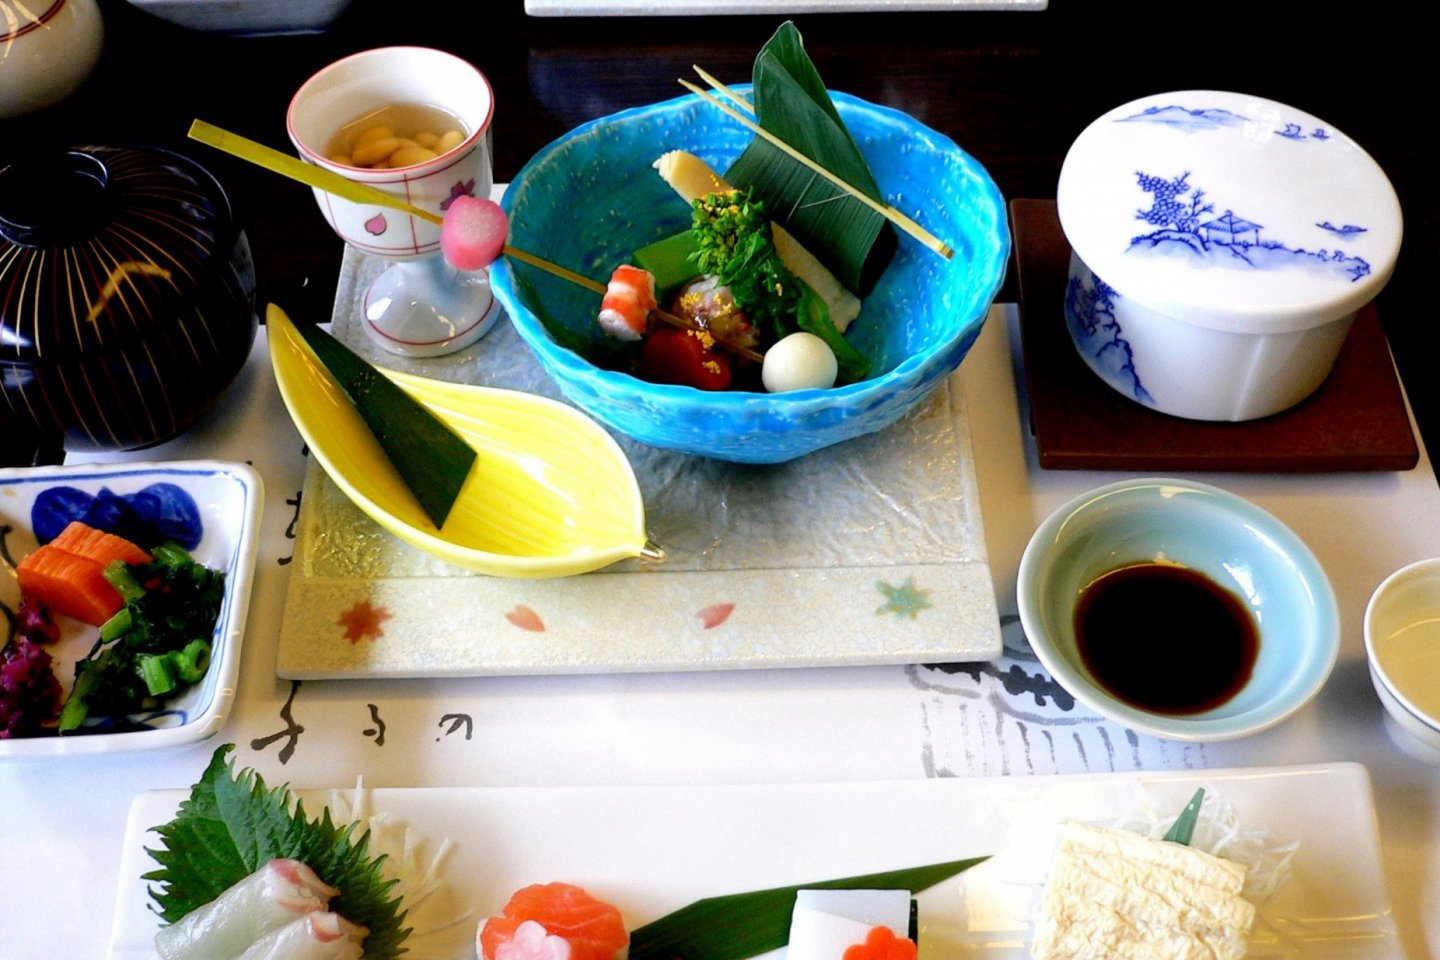 Beautifully presented and value for money Japanese cuisine